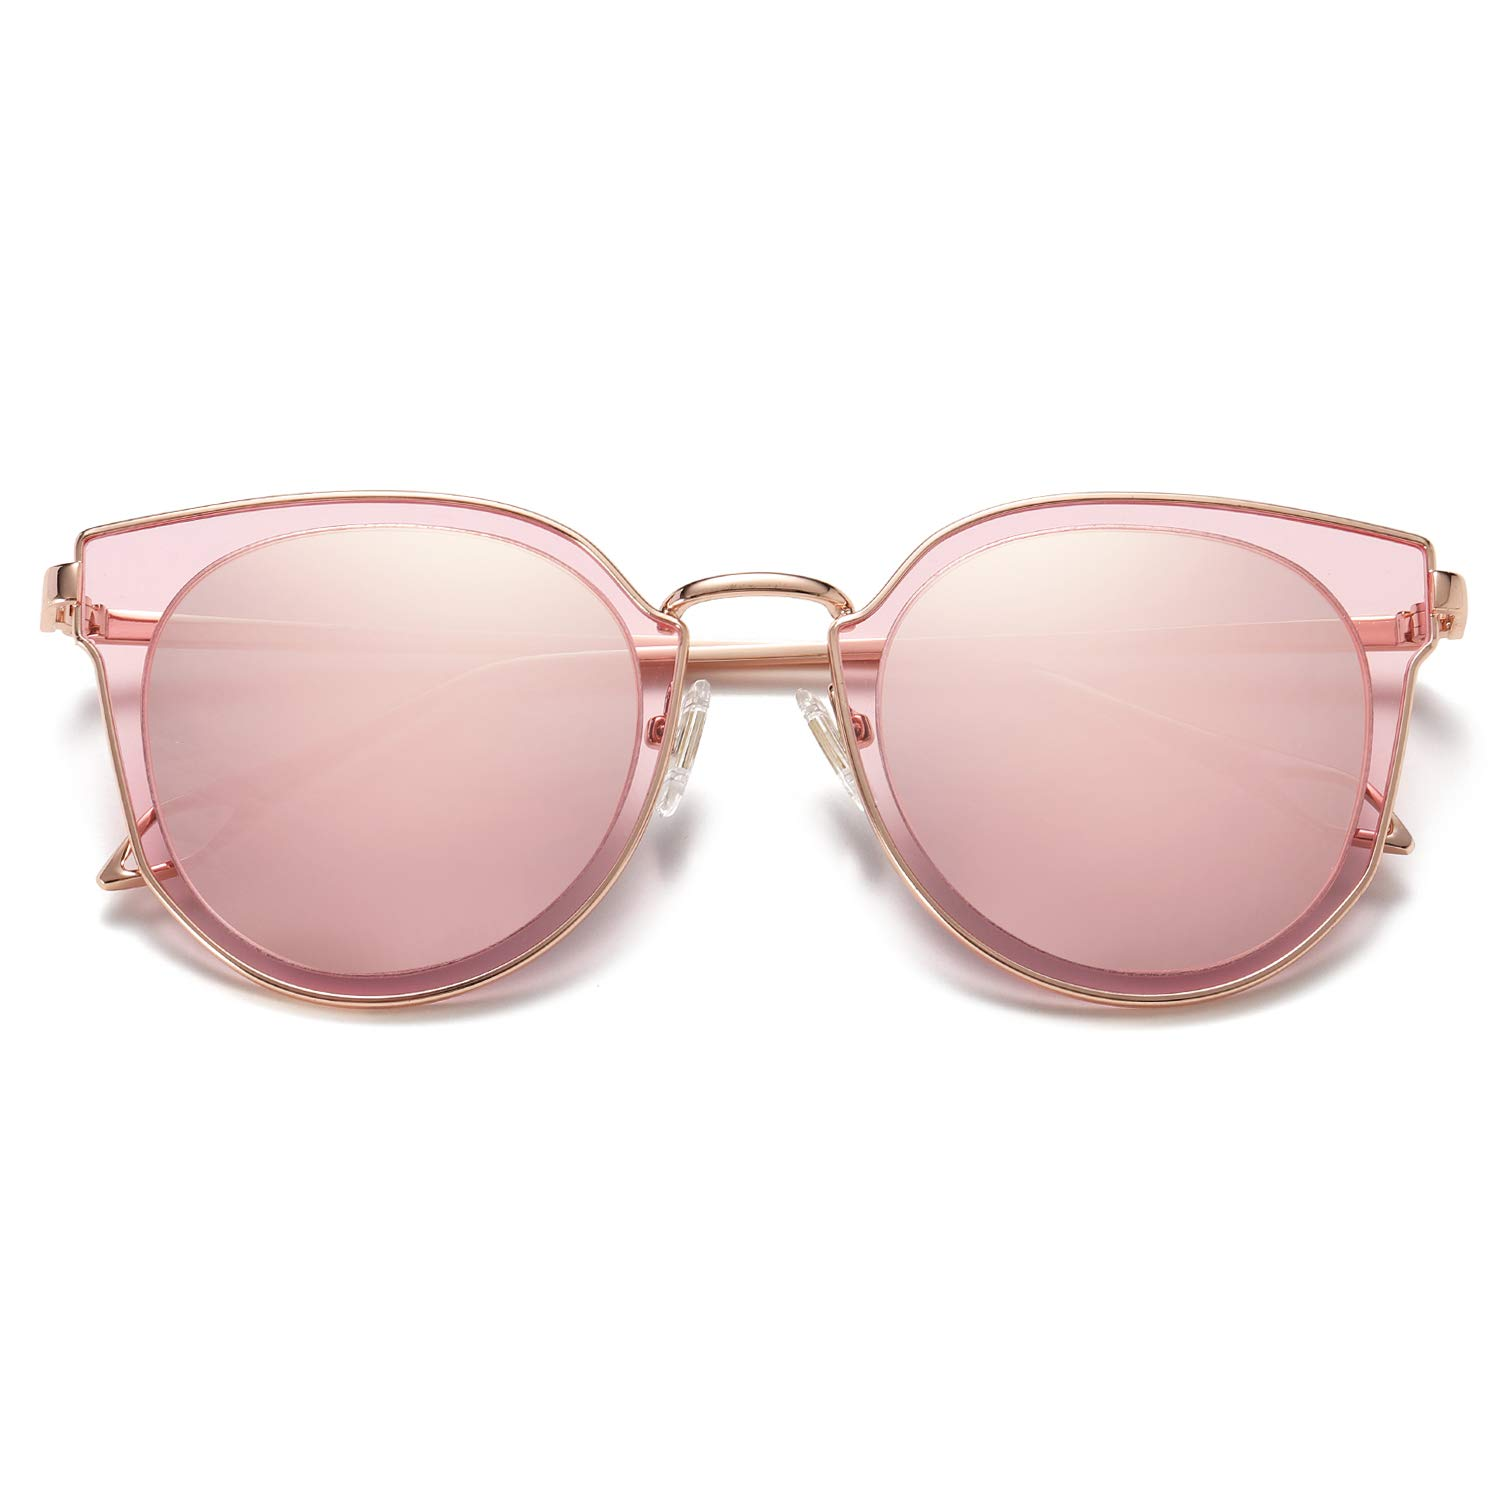 SOJOS Fashion Round Polarized Sunglasses for Women UV400 Mirrored Lens SJ1057 with Rose Gold Frame/Pink Mirrored Lens by SOJOS